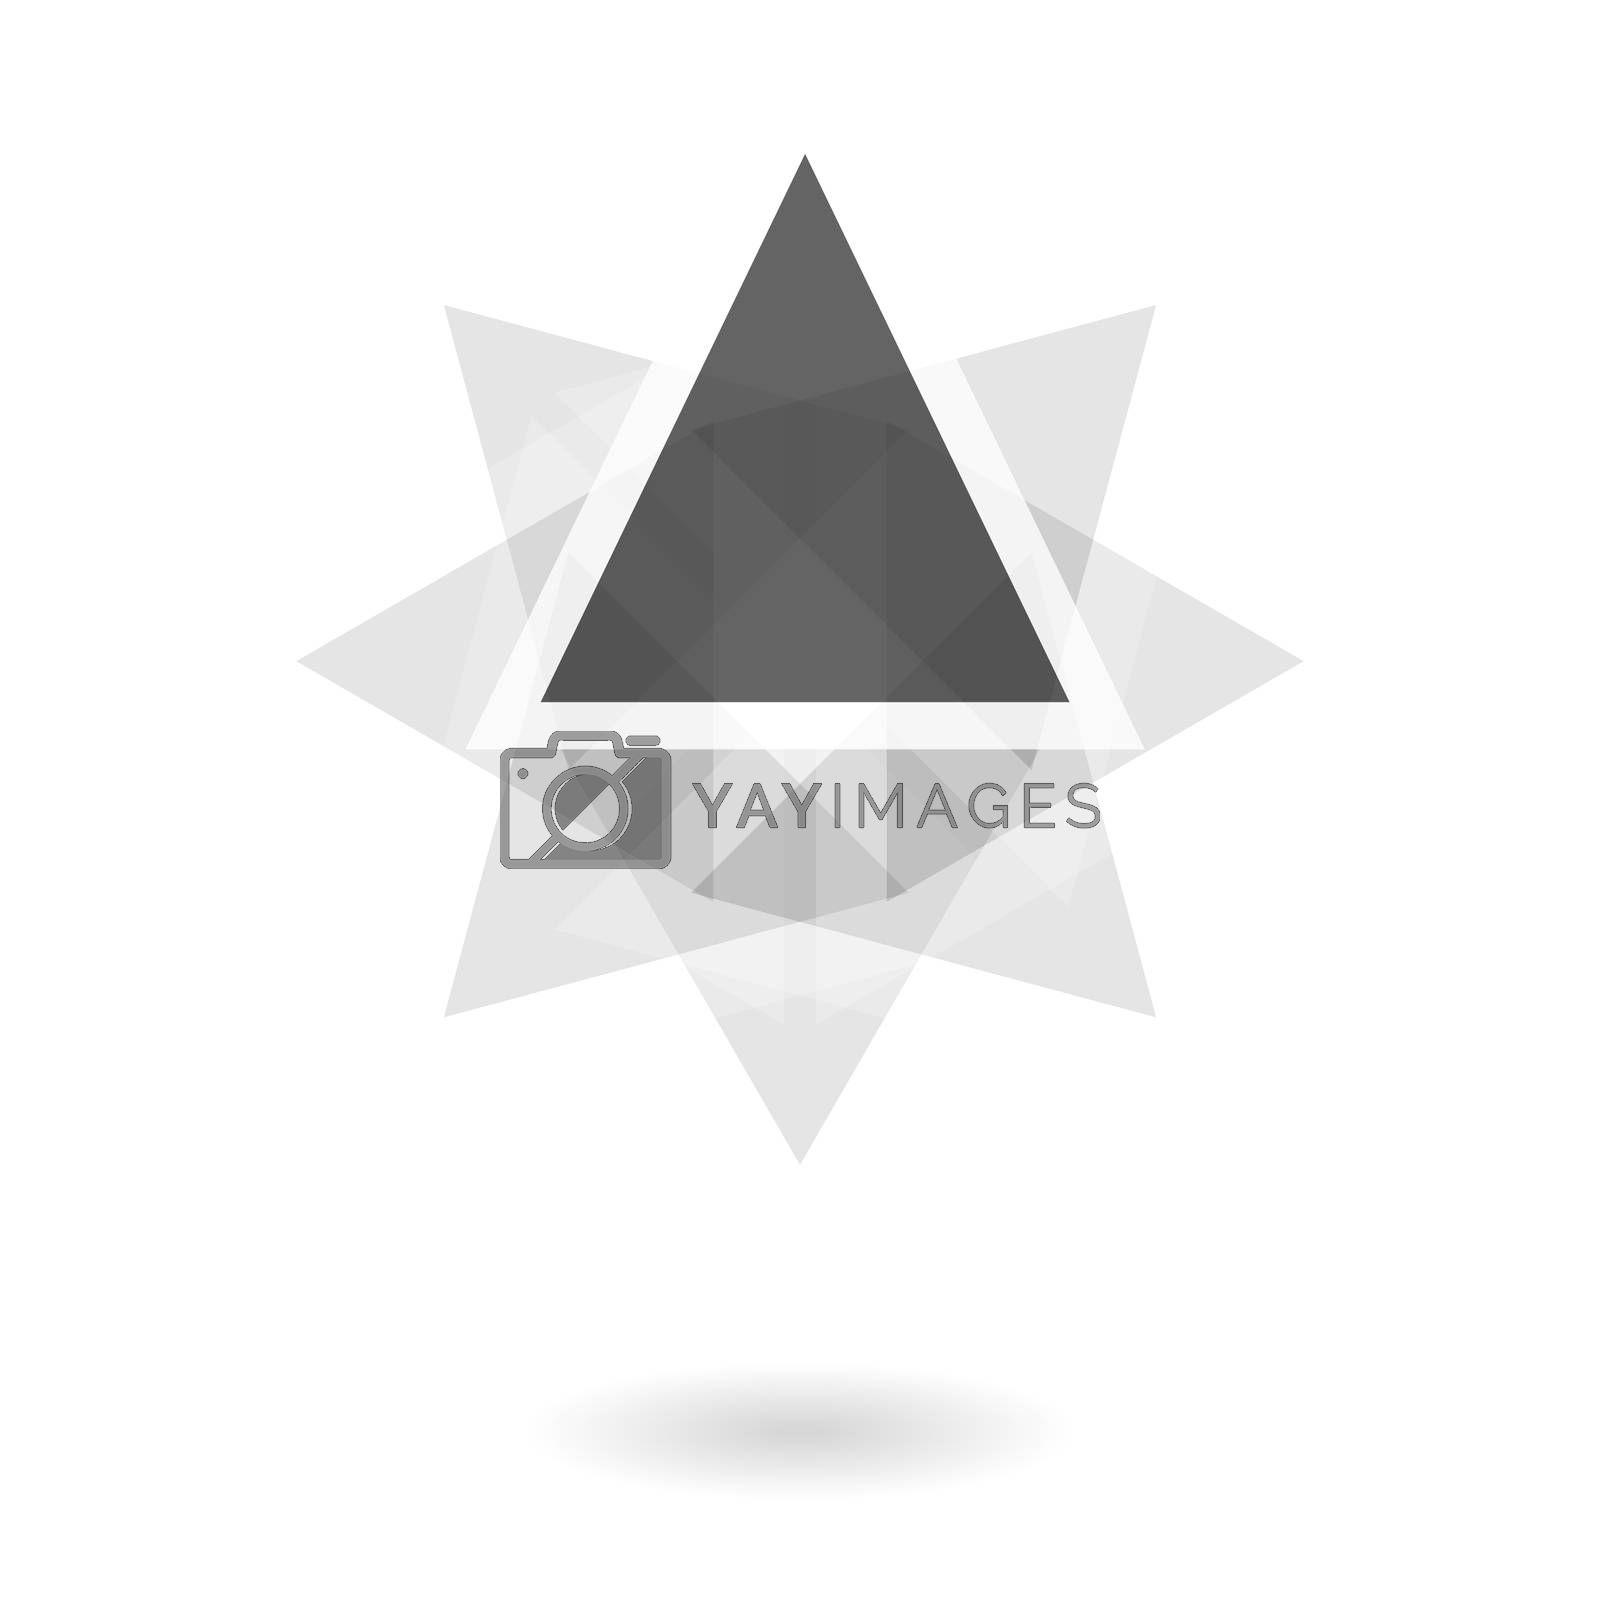 Royalty free image of Abstract geometric pattern, black and white triangle rotation logo by mouu007